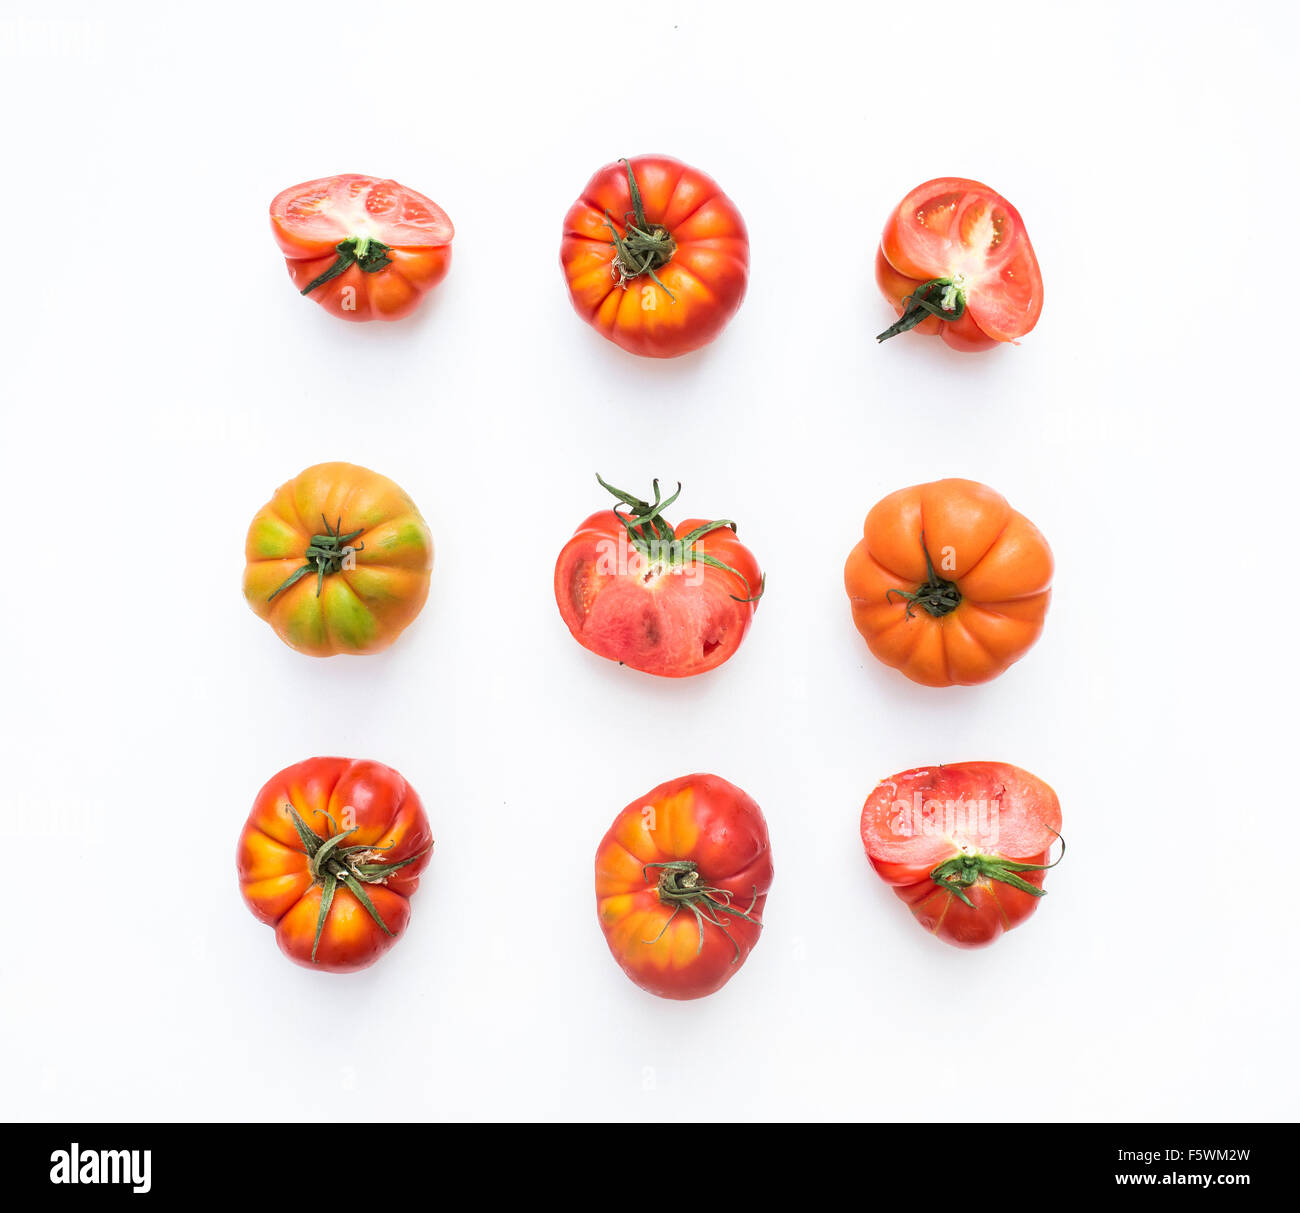 Selection of heirloom tomatoes on a white backdrop, top view - Stock Image